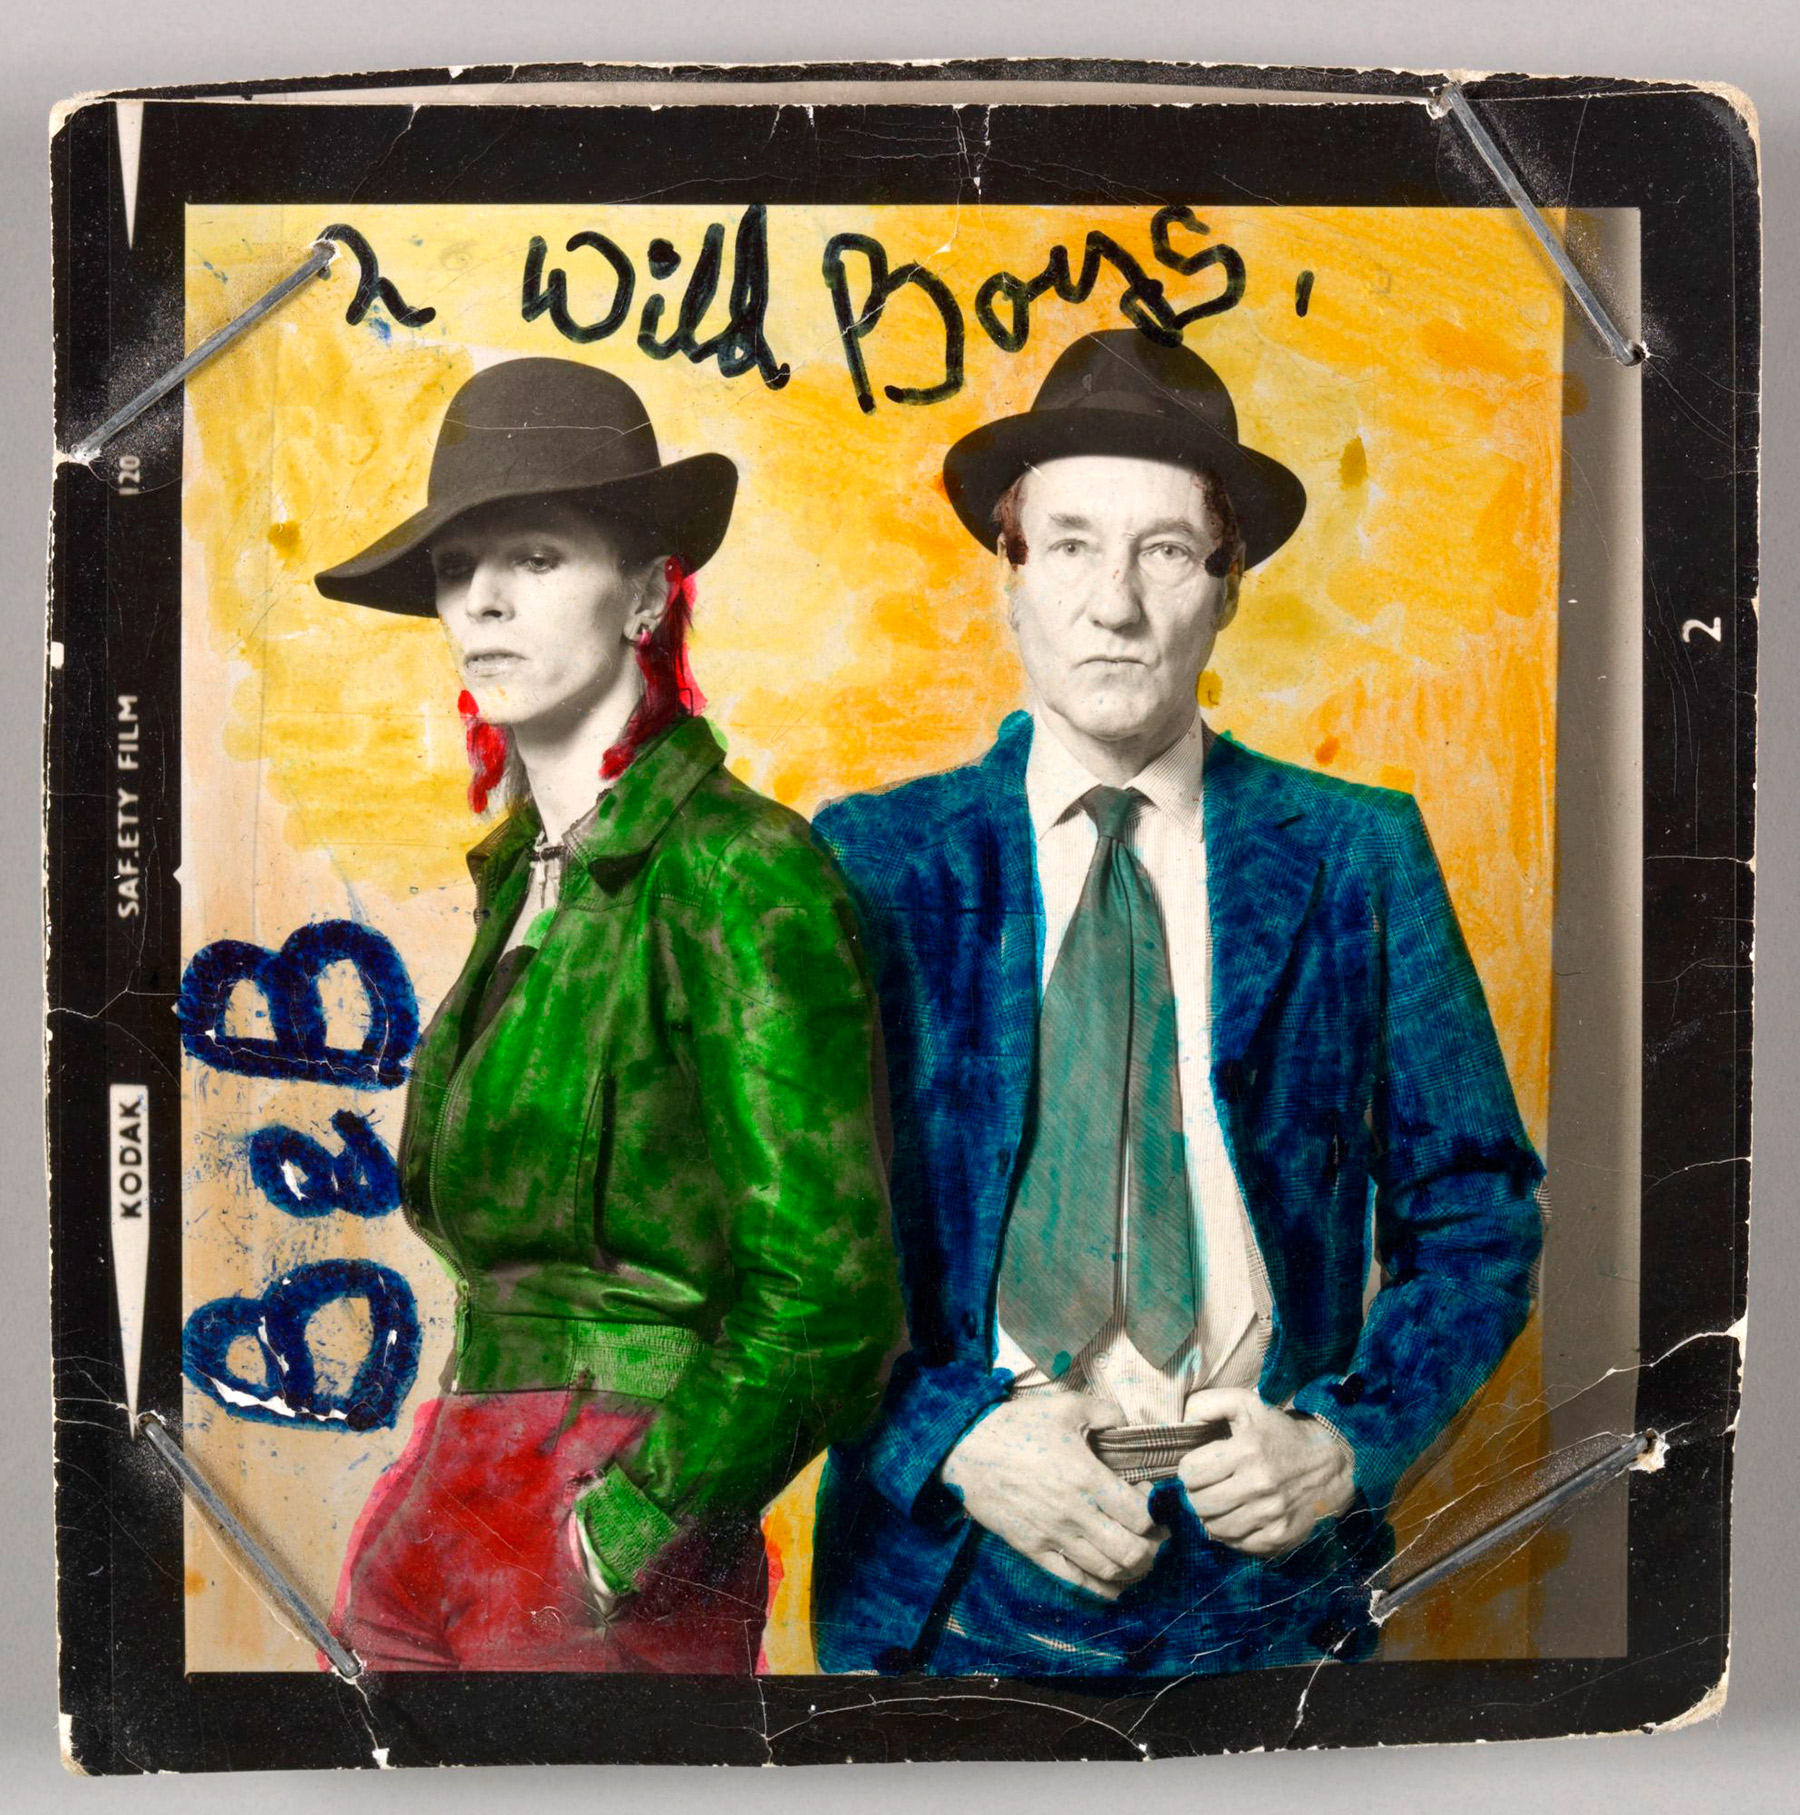 David-Bowie-with-William-Burroughs,-February-1974